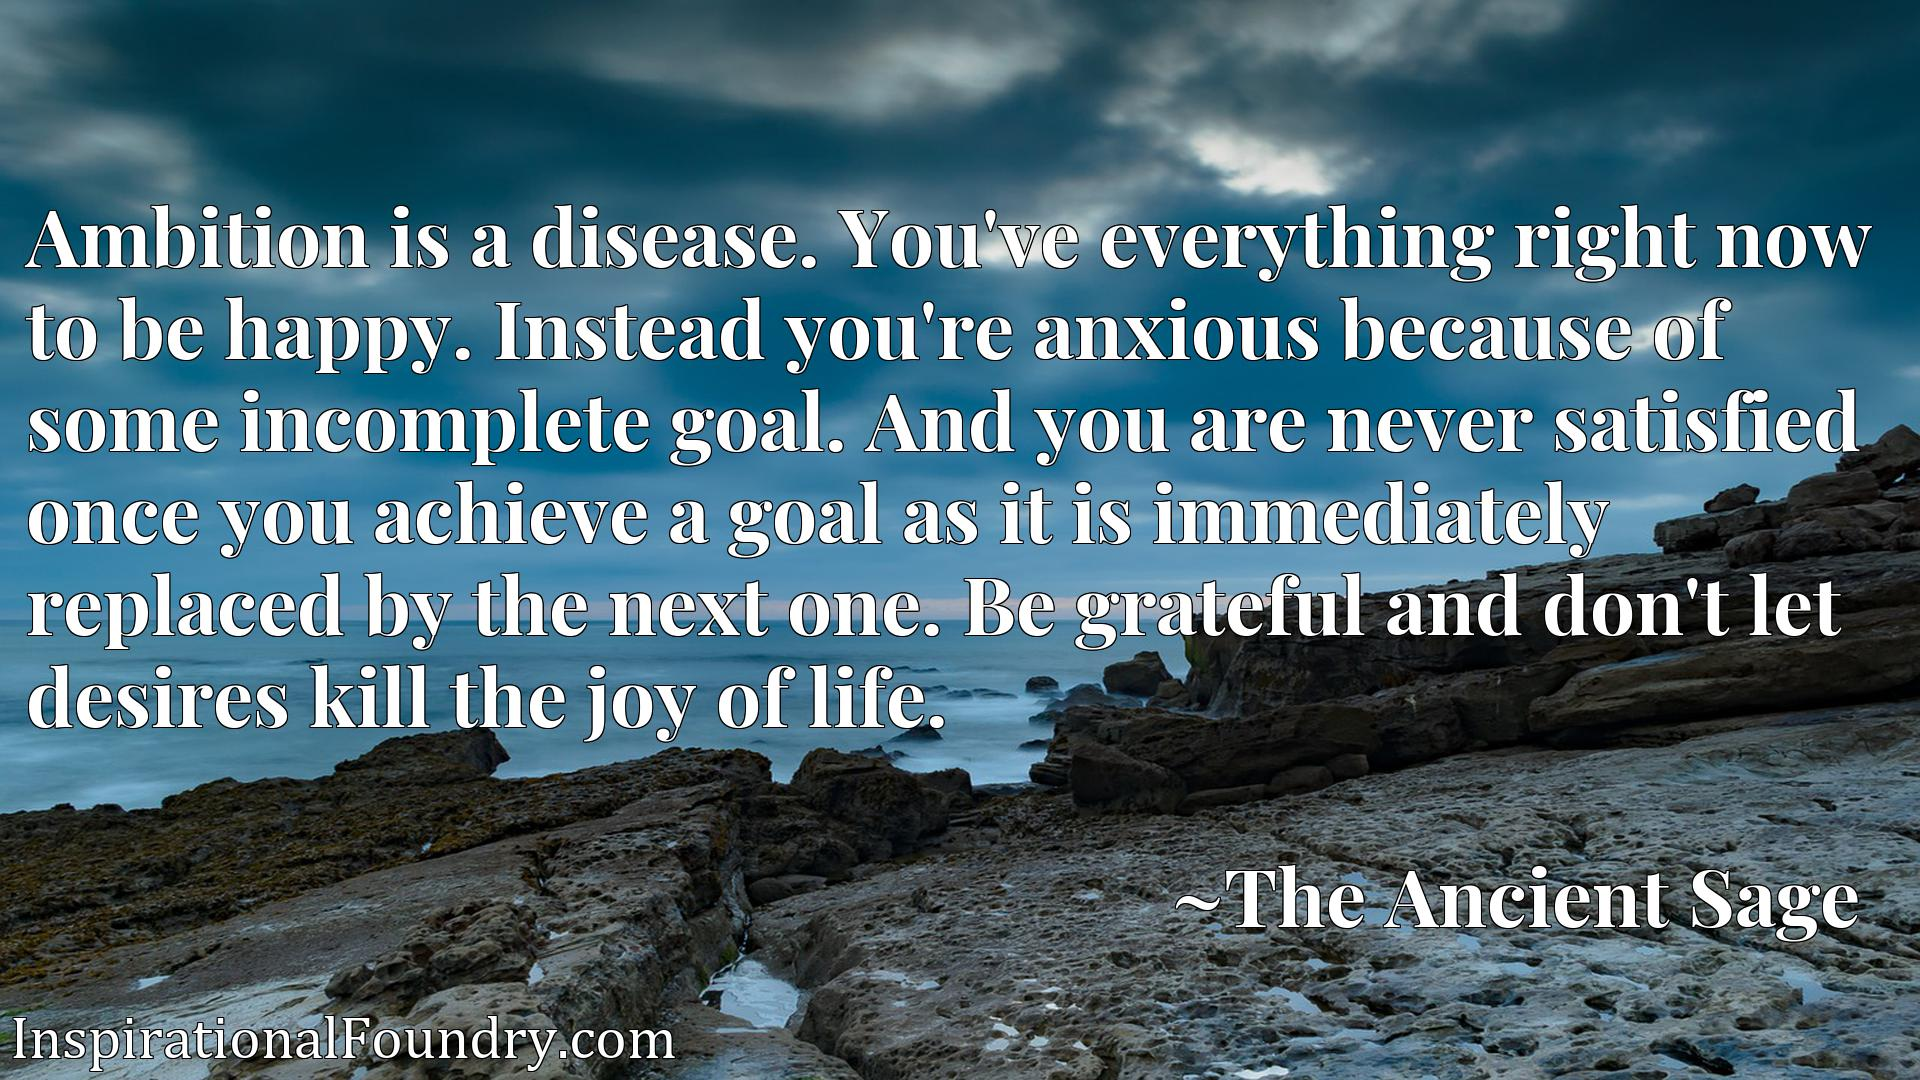 Ambition is a disease. You've everything right now to be happy. Instead you're anxious because of some incomplete goal. And you are never satisfied once you achieve a goal as it is immediately replaced by the next one. Be grateful and don't let desires kill the joy of life.